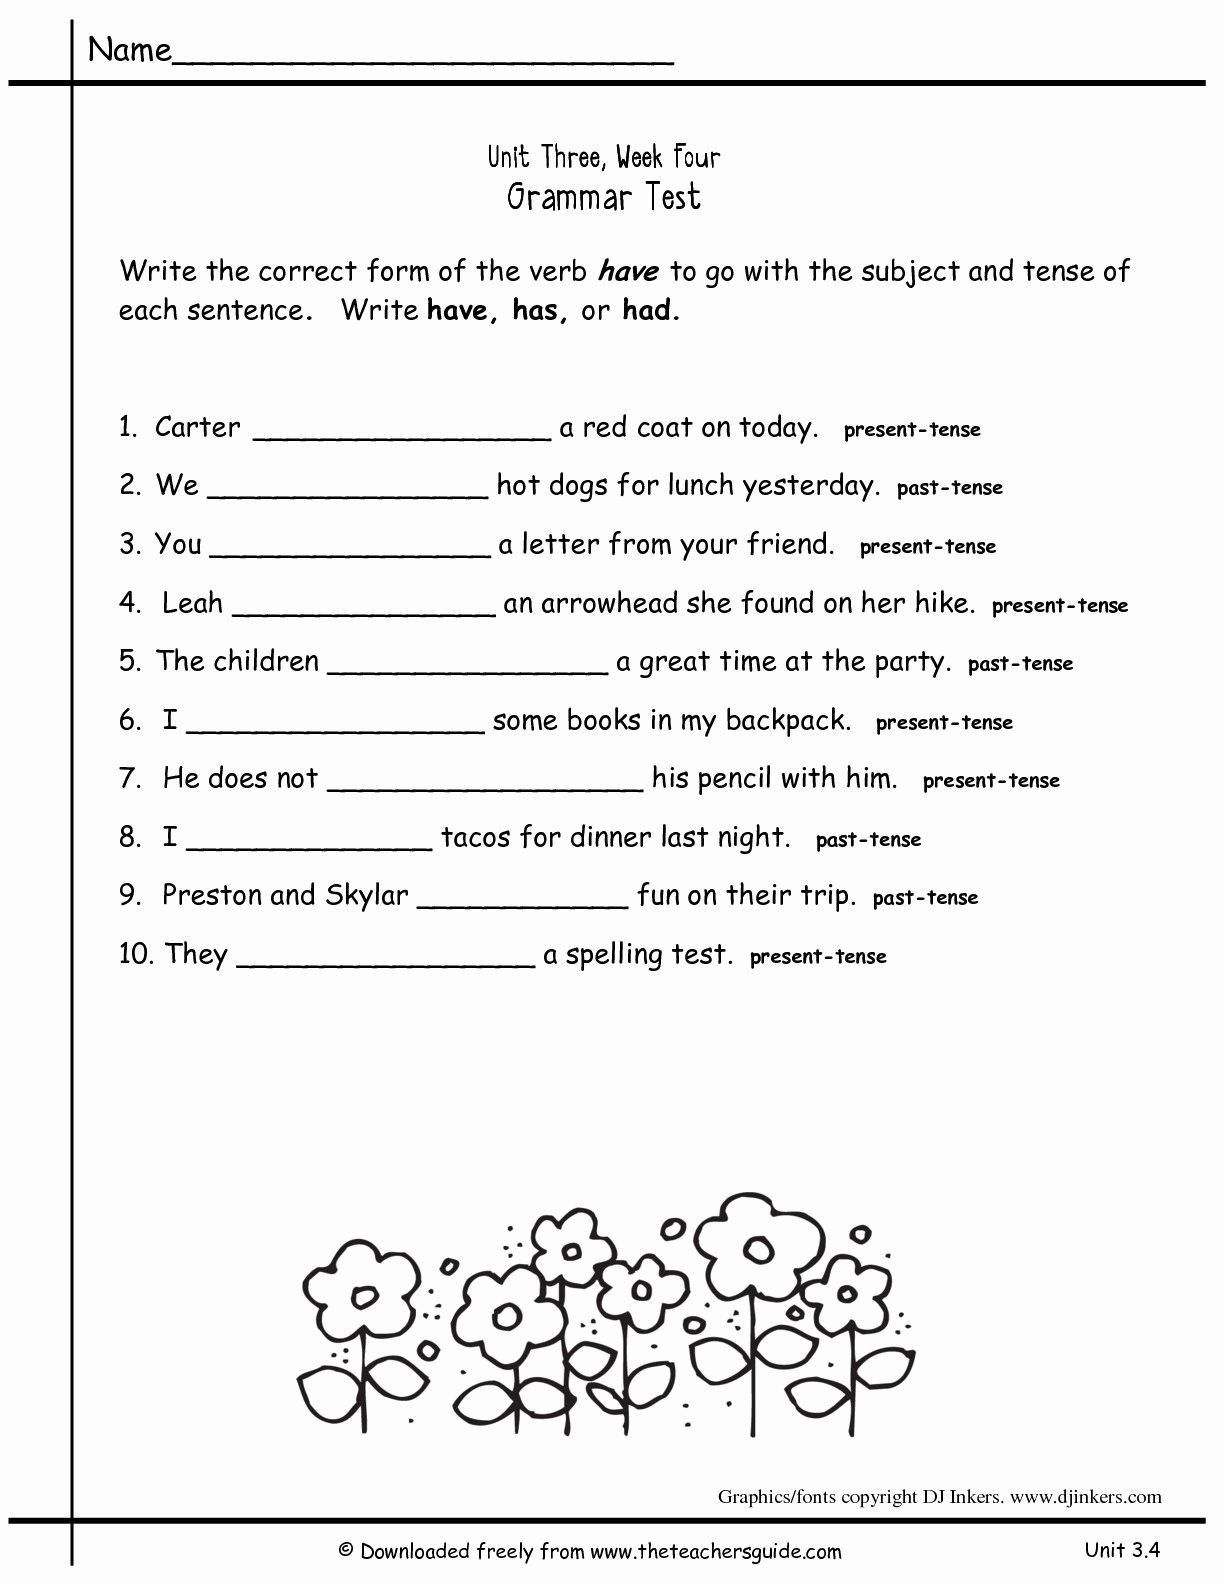 2nd Grade Spelling Worksheets Pdf 2nd Grade Grammar Worksheets Pdf New Worksheets for All